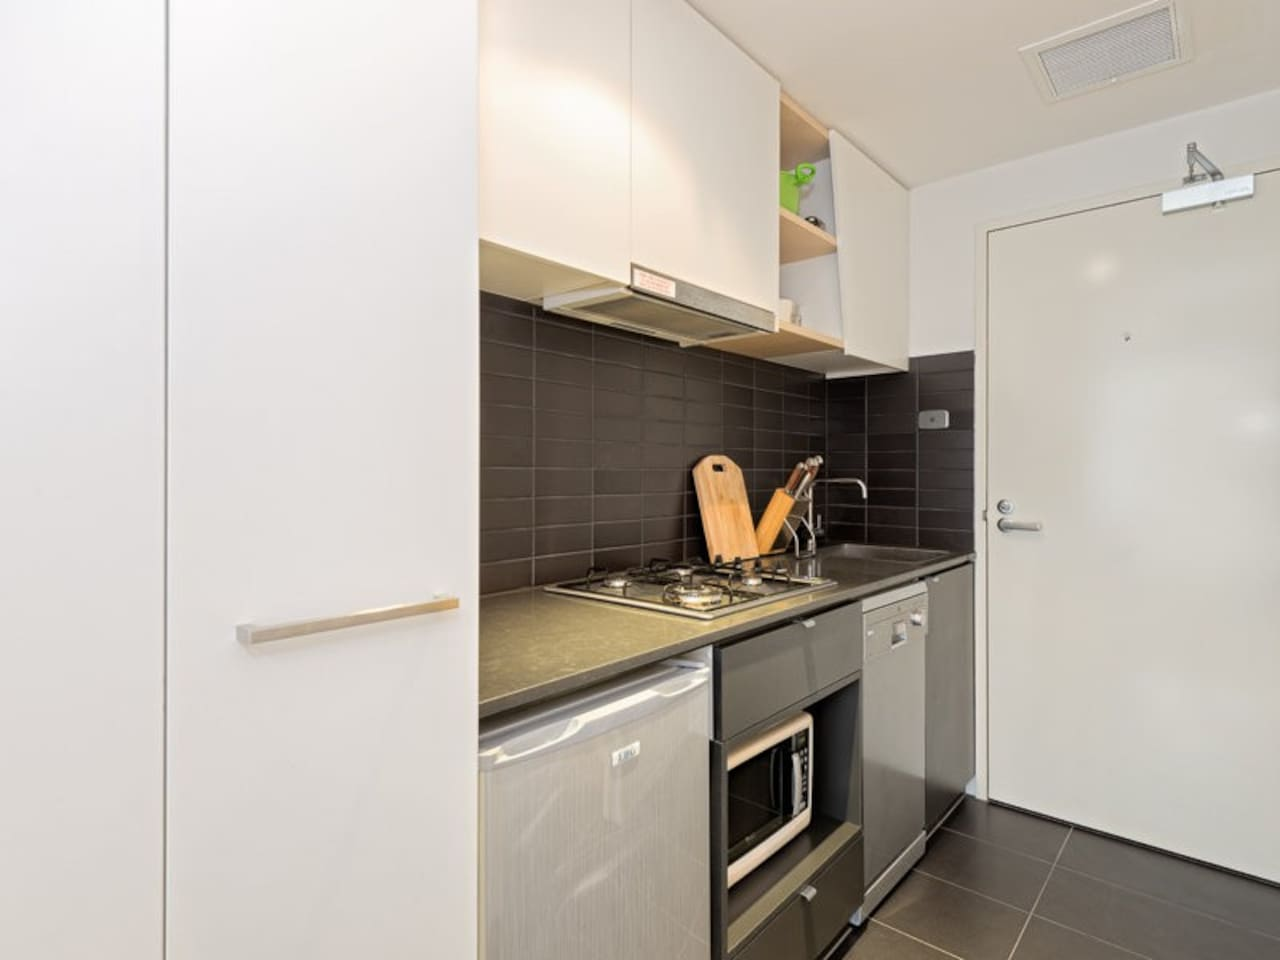 Kitchen with Fridge and Microvwave